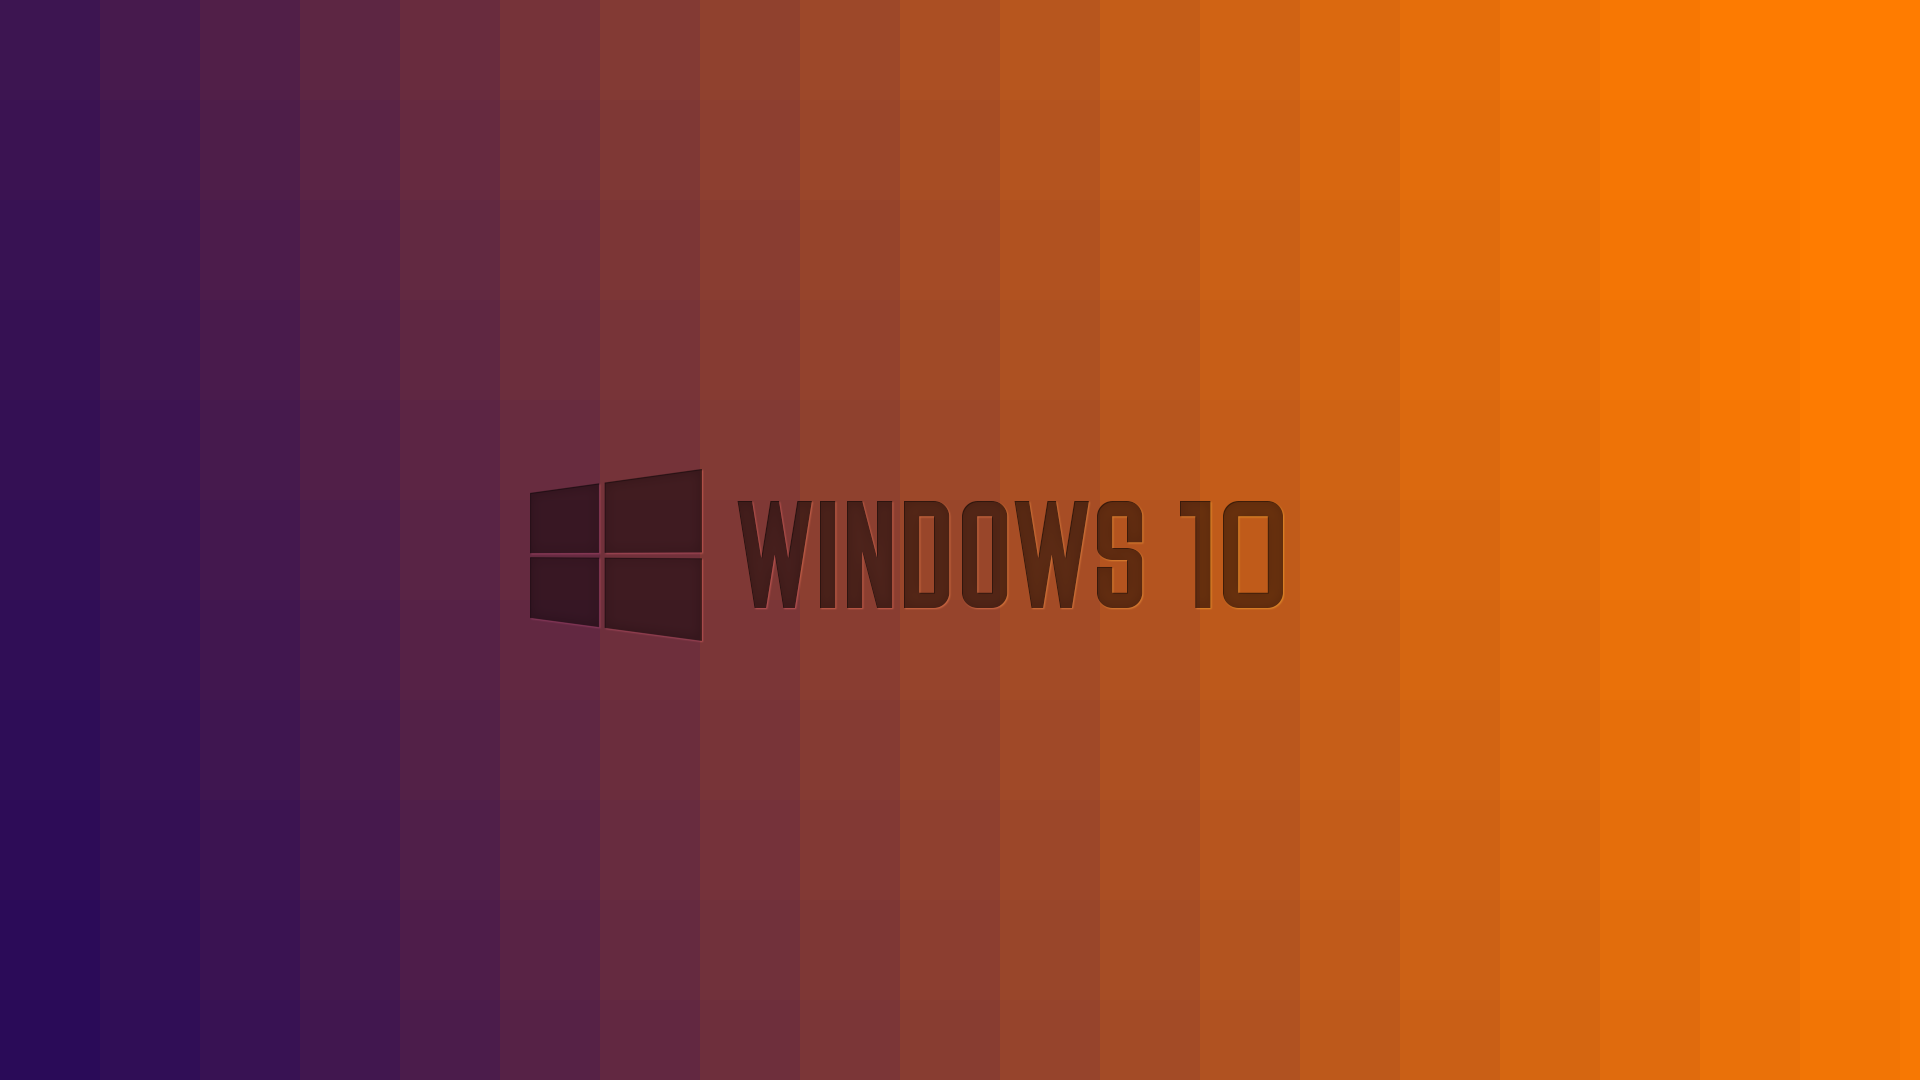 windows 10 logo wallpaper and theme pack all for windows 10 free